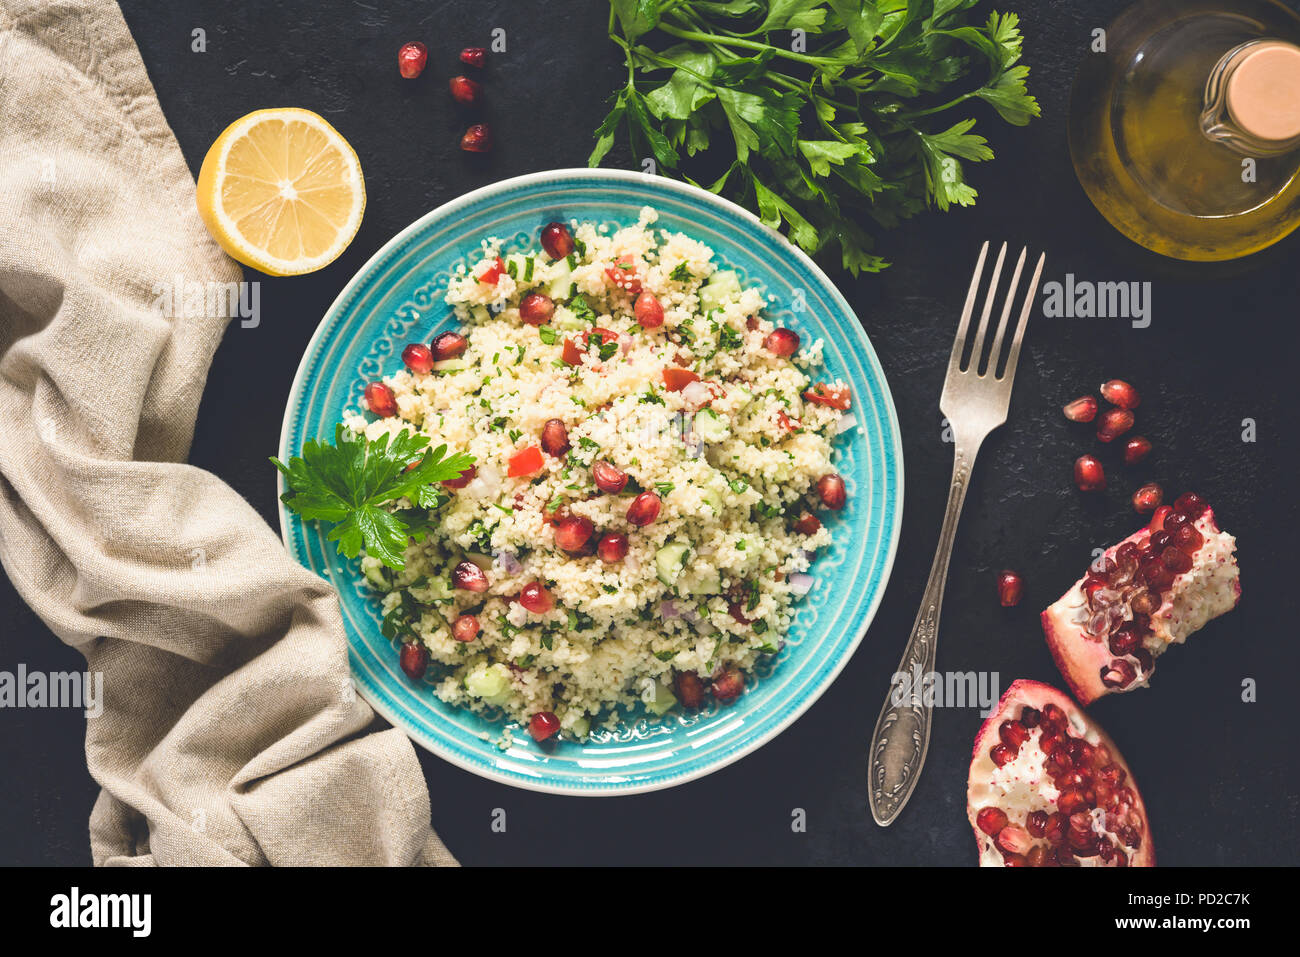 Middle Eastern Salad Tabbouleh With CousCous, Pomegranate seeds, Parsley. Top view, toned image - Stock Image